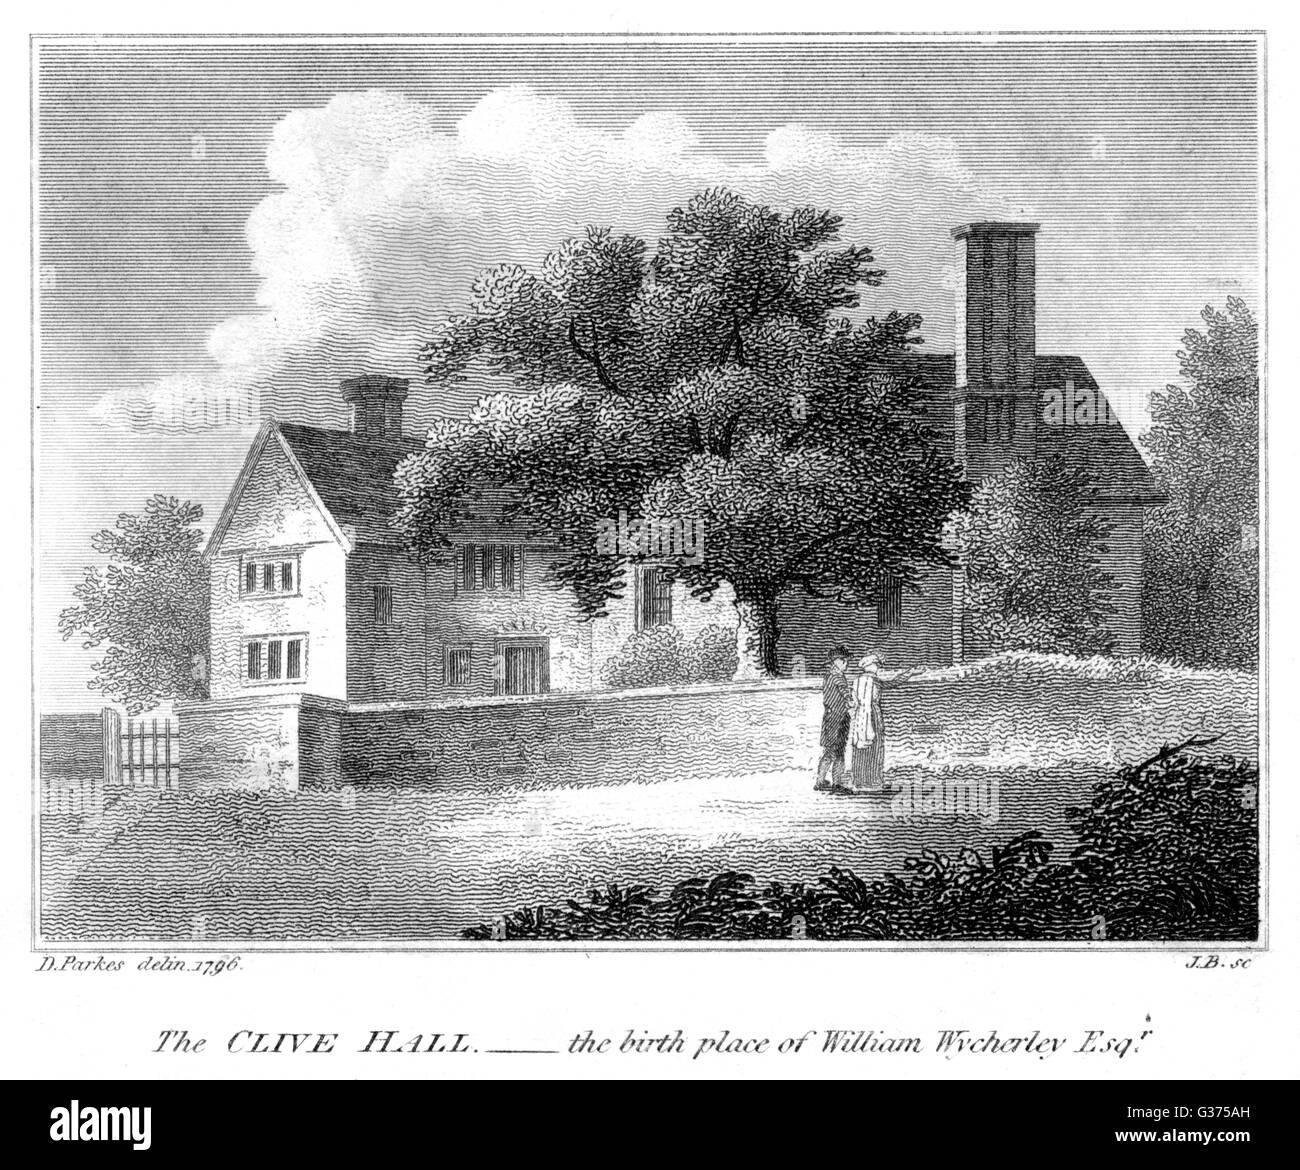 Playwright WILLIAM WYCHERLEY's  home at Clive Hall.         Date: 1640 - 1716 - Stock Image